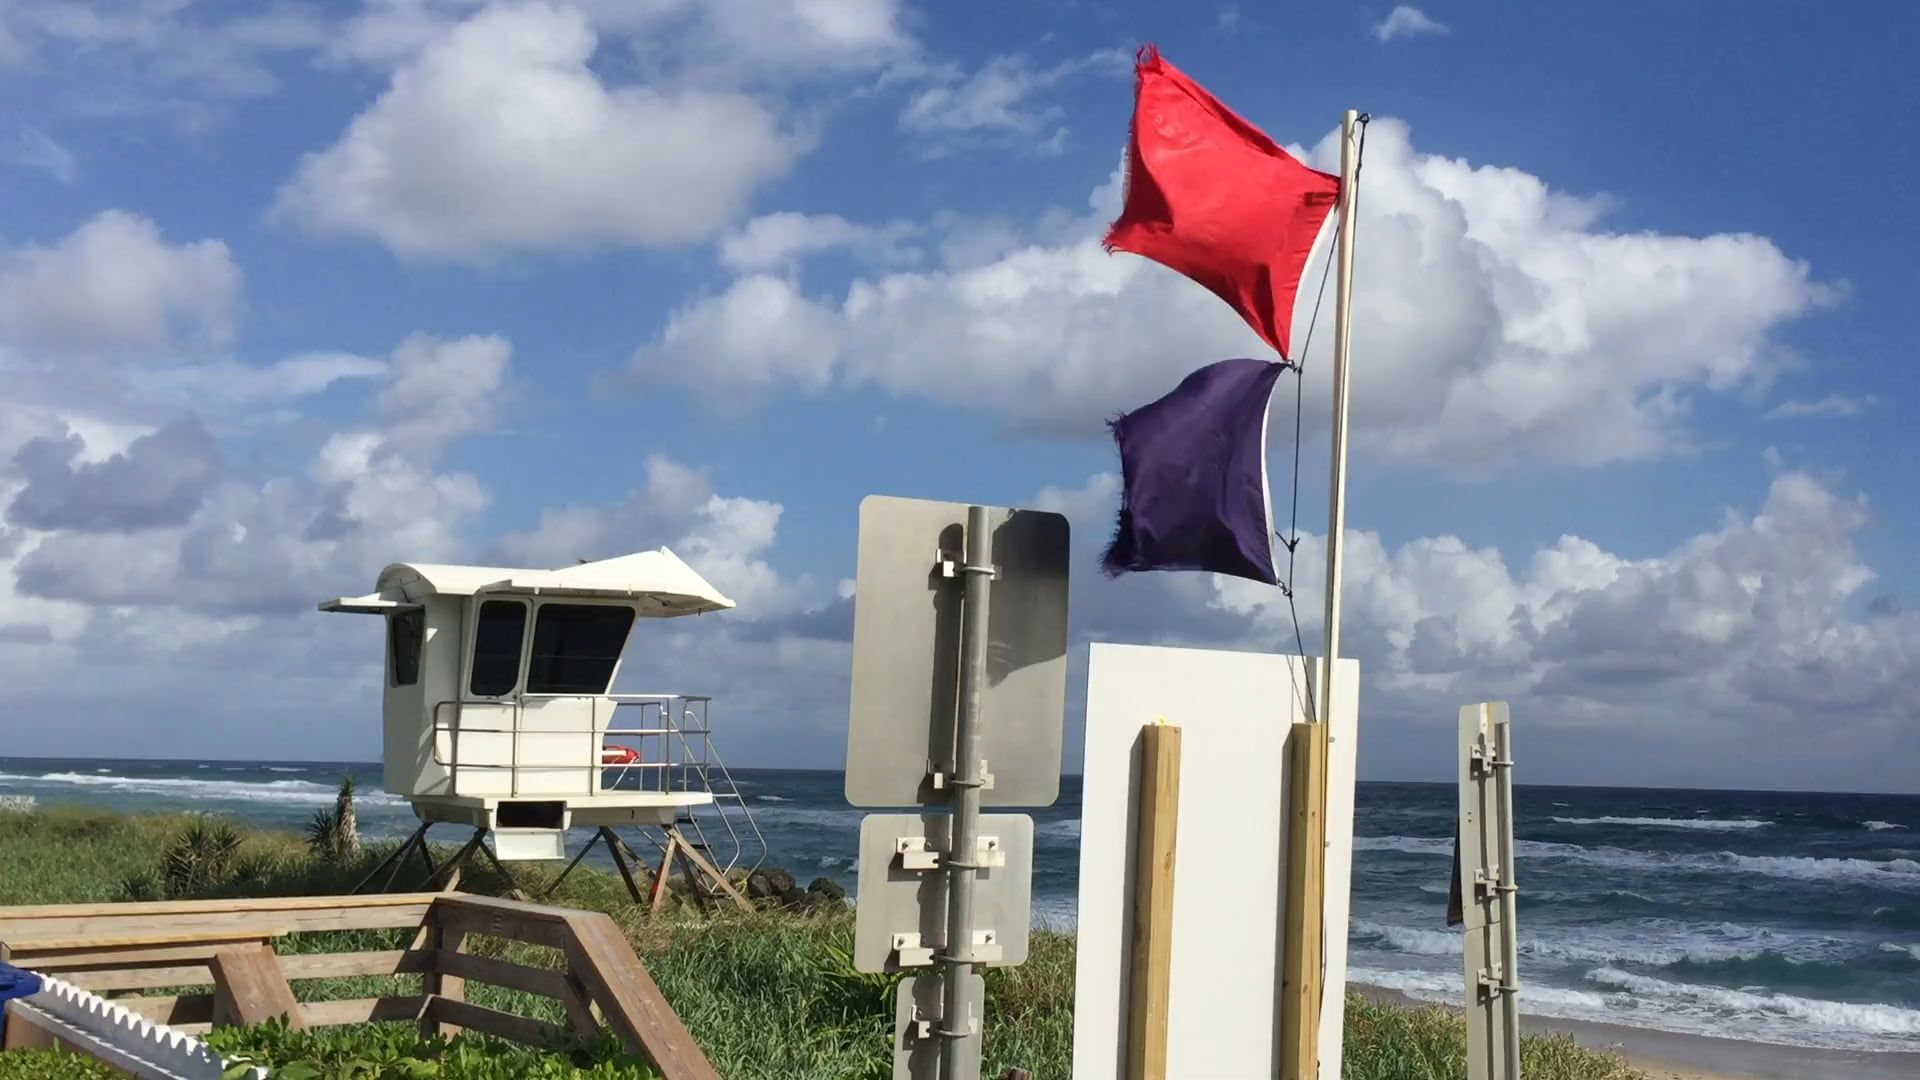 Rough Ocean With Red And Purple Flags Flying In The Town Of Palmbeach Ocean Palm Beach Towns